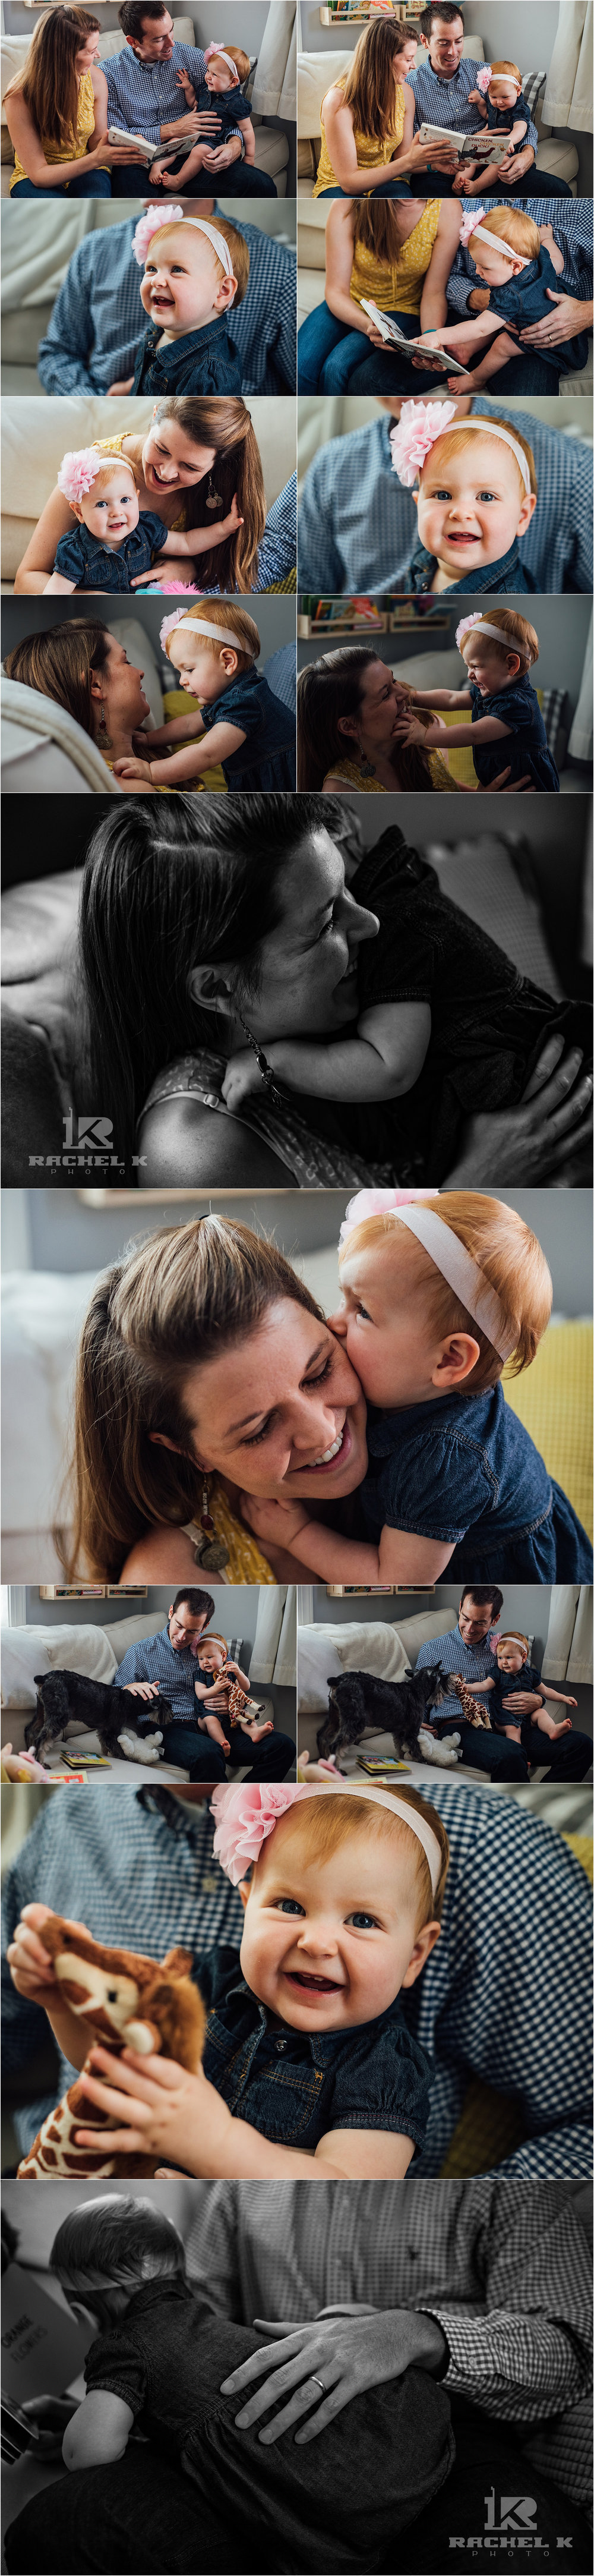 Fairfax Virginia family session by Rachel K Photo